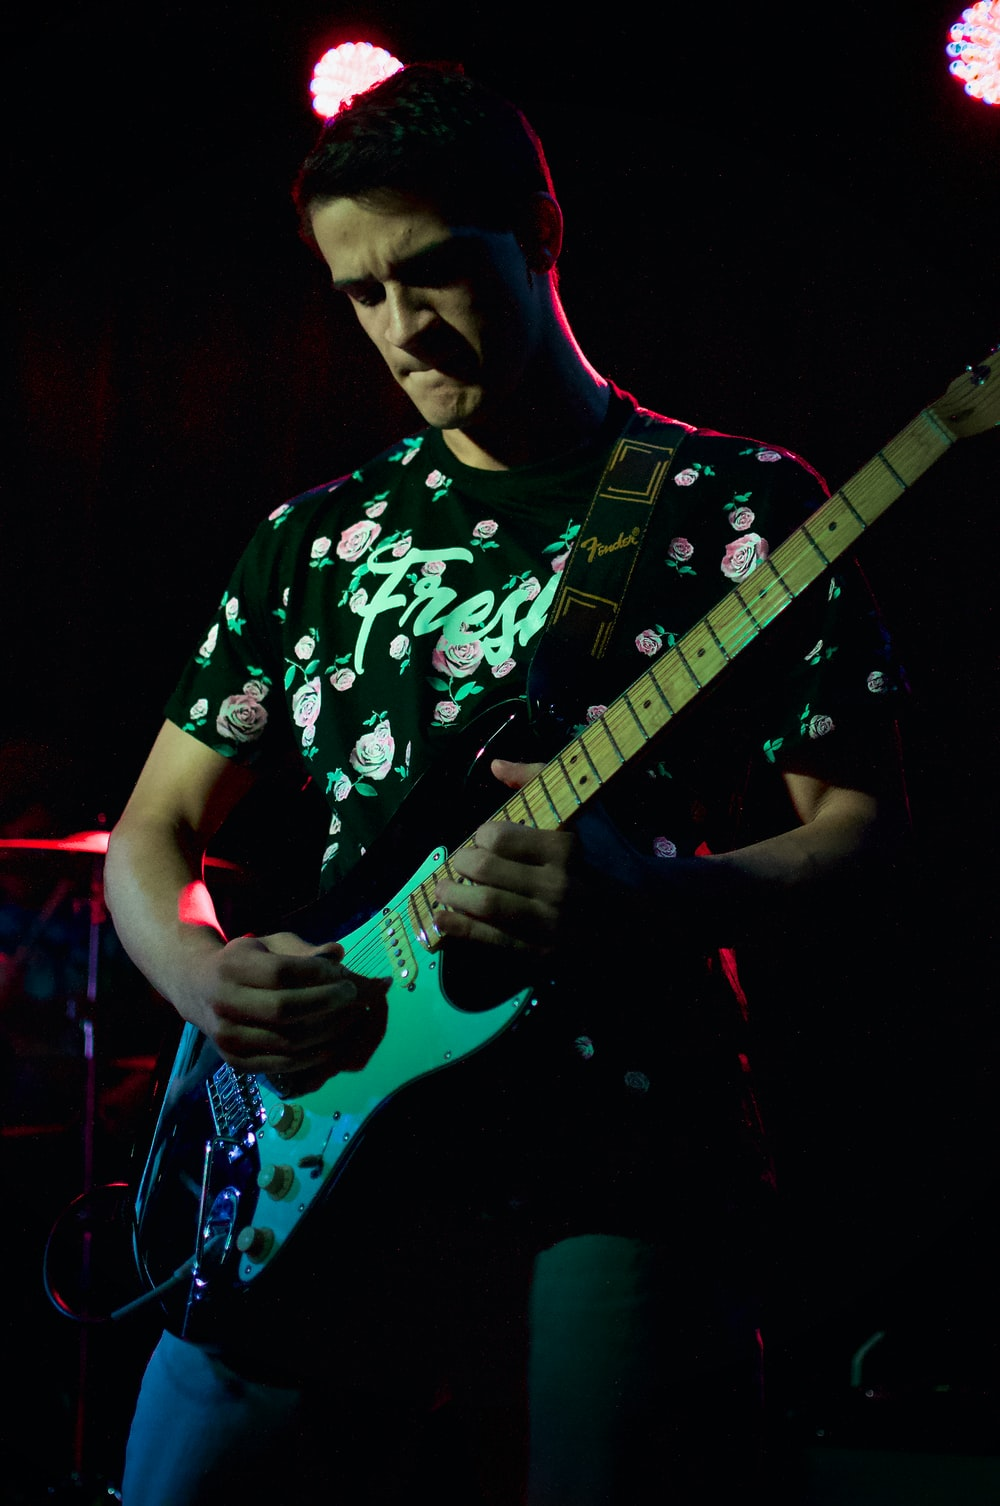 man in black and white floral crew neck t-shirt playing electric guitar